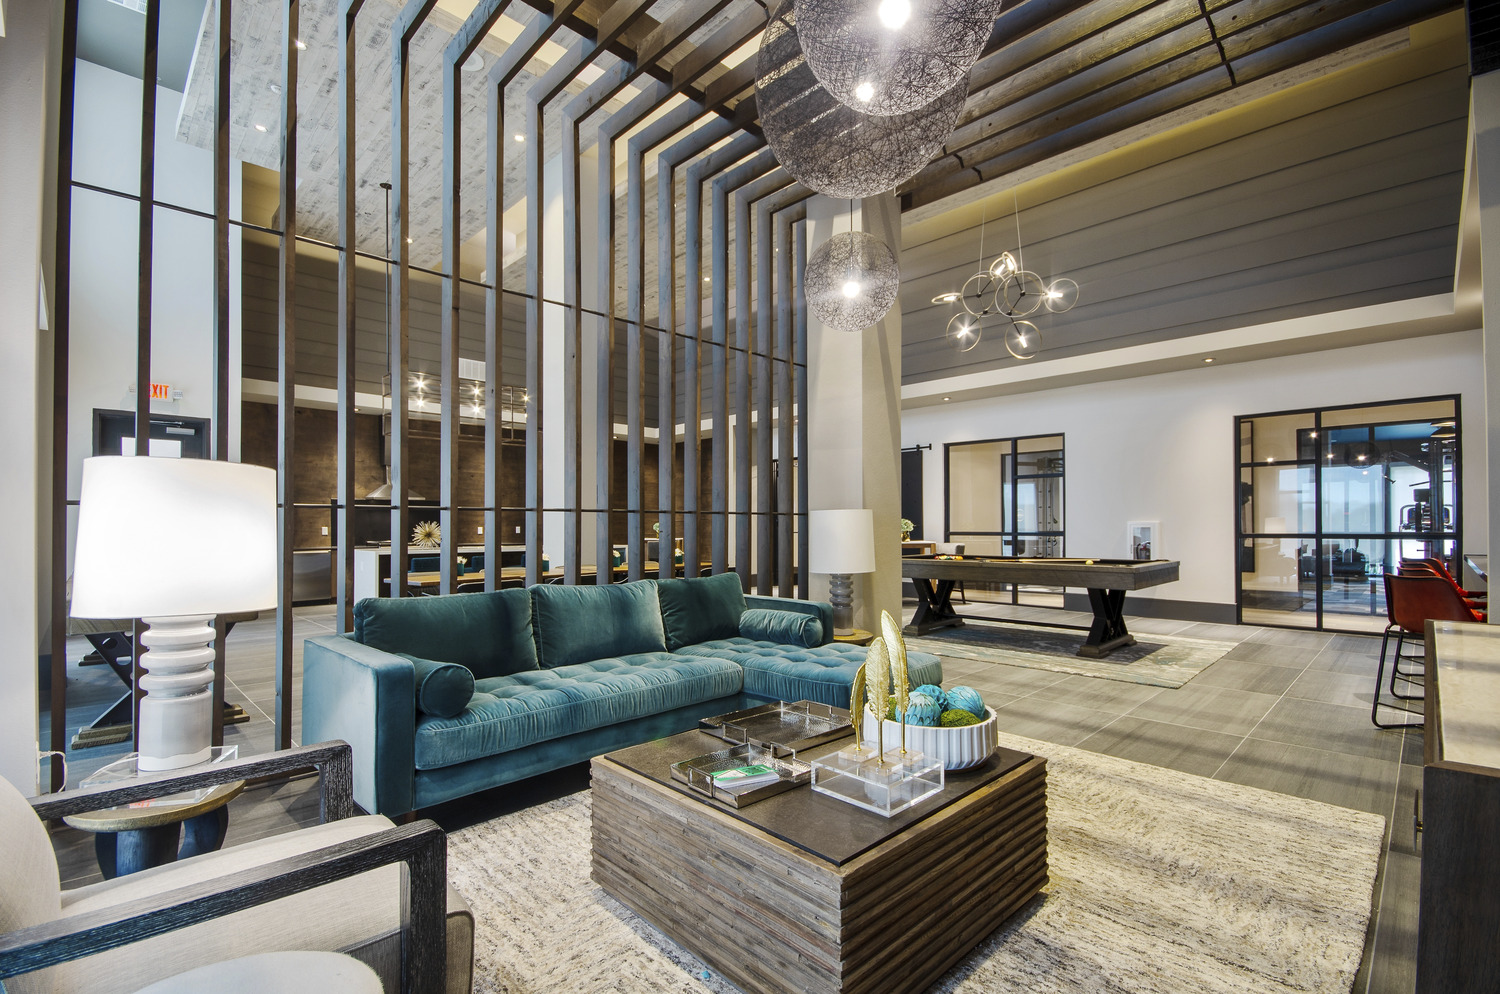 CBG builds Domain at the One Forty, a 10-Building Garden-Style Community with Amenities in Garland, TX - Image #10